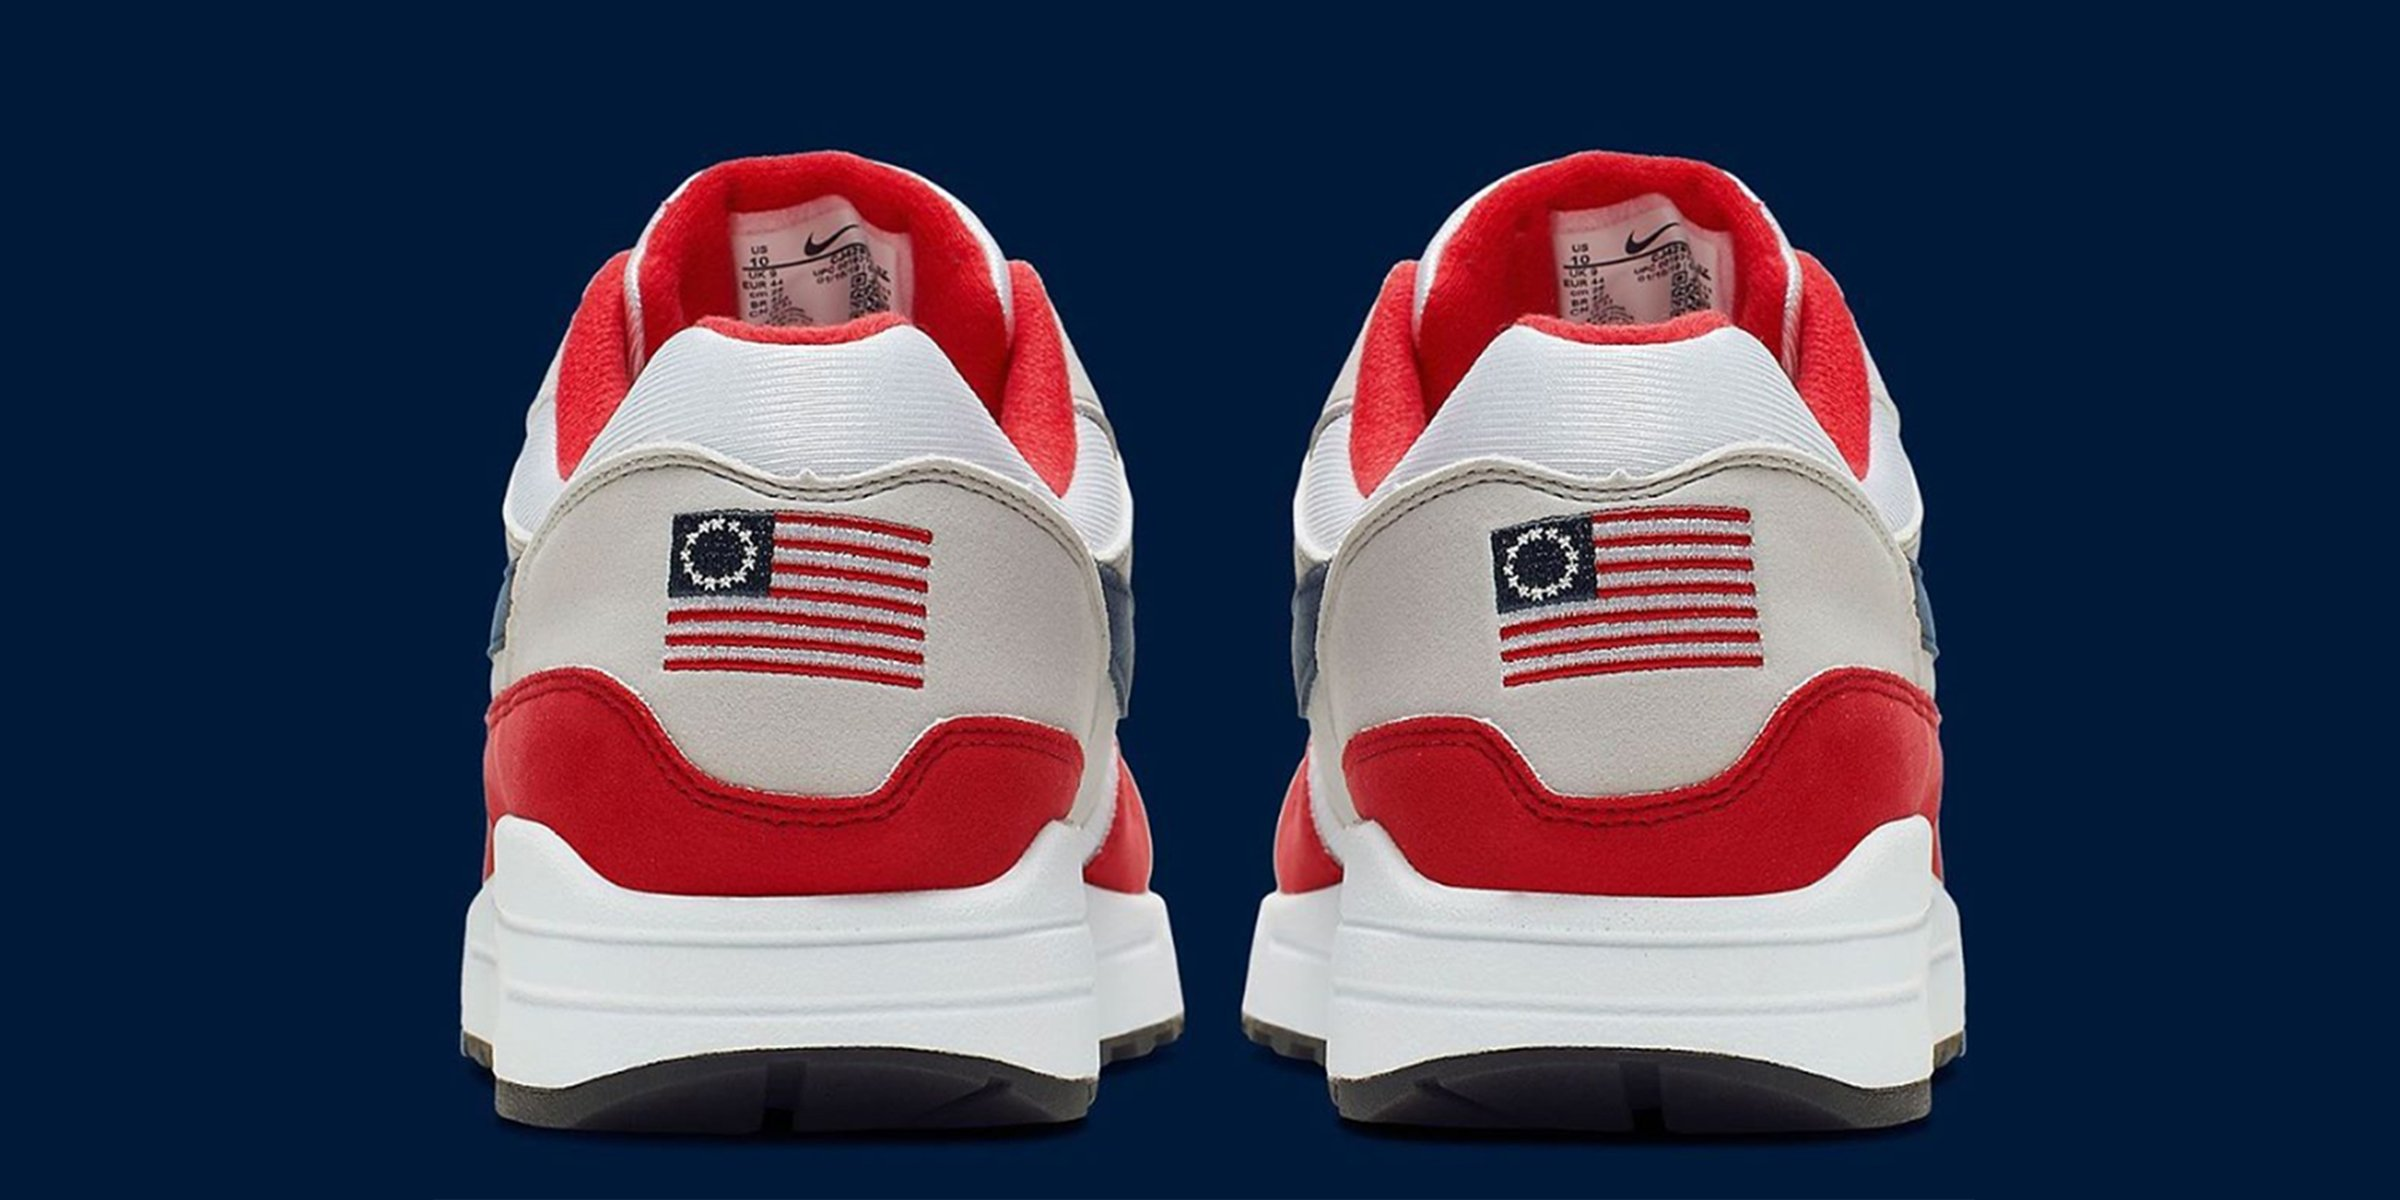 American flag history gains spotlight after the launch of Nike's Betsy Ross Flag sneakers